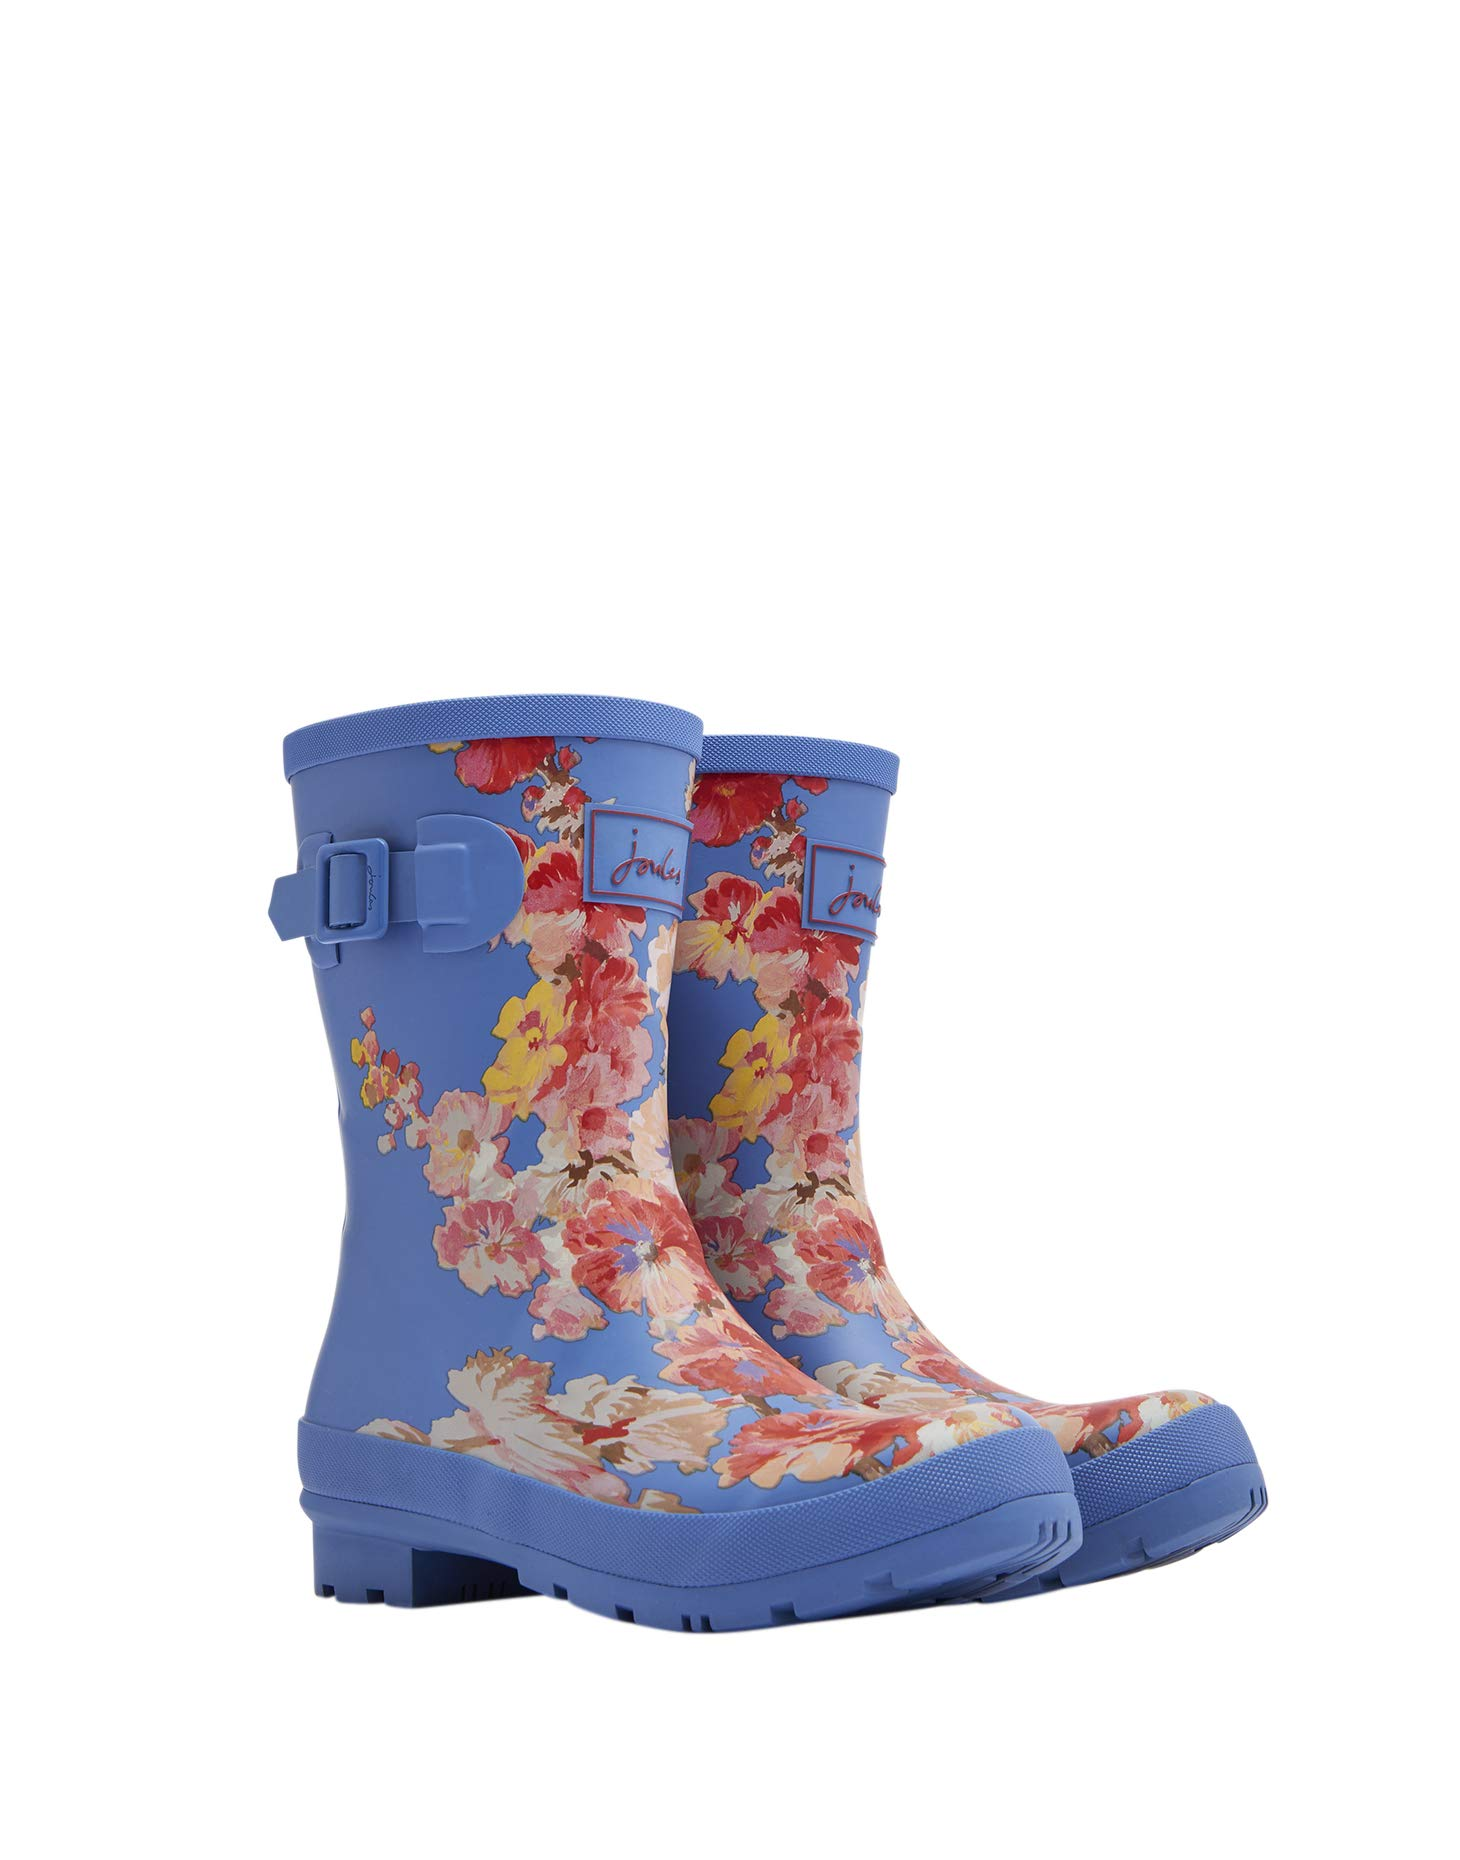 Joules Molly Welly Wellies 4 D(M) US Blue Floral